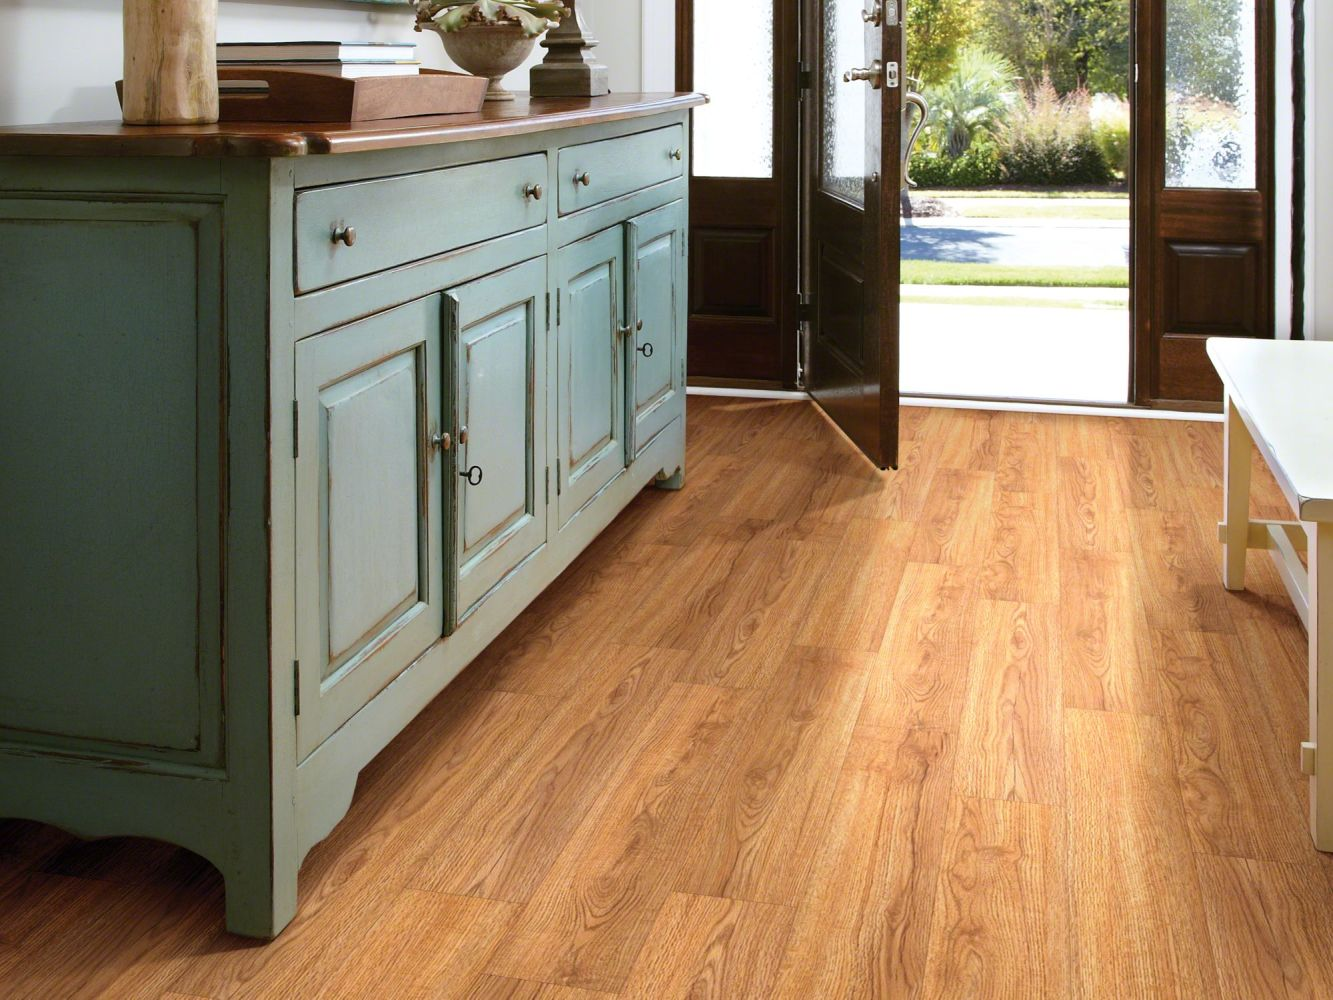 Shaw Floors Exclusive Pacific Coast12 Philadelphia 00269_1029V